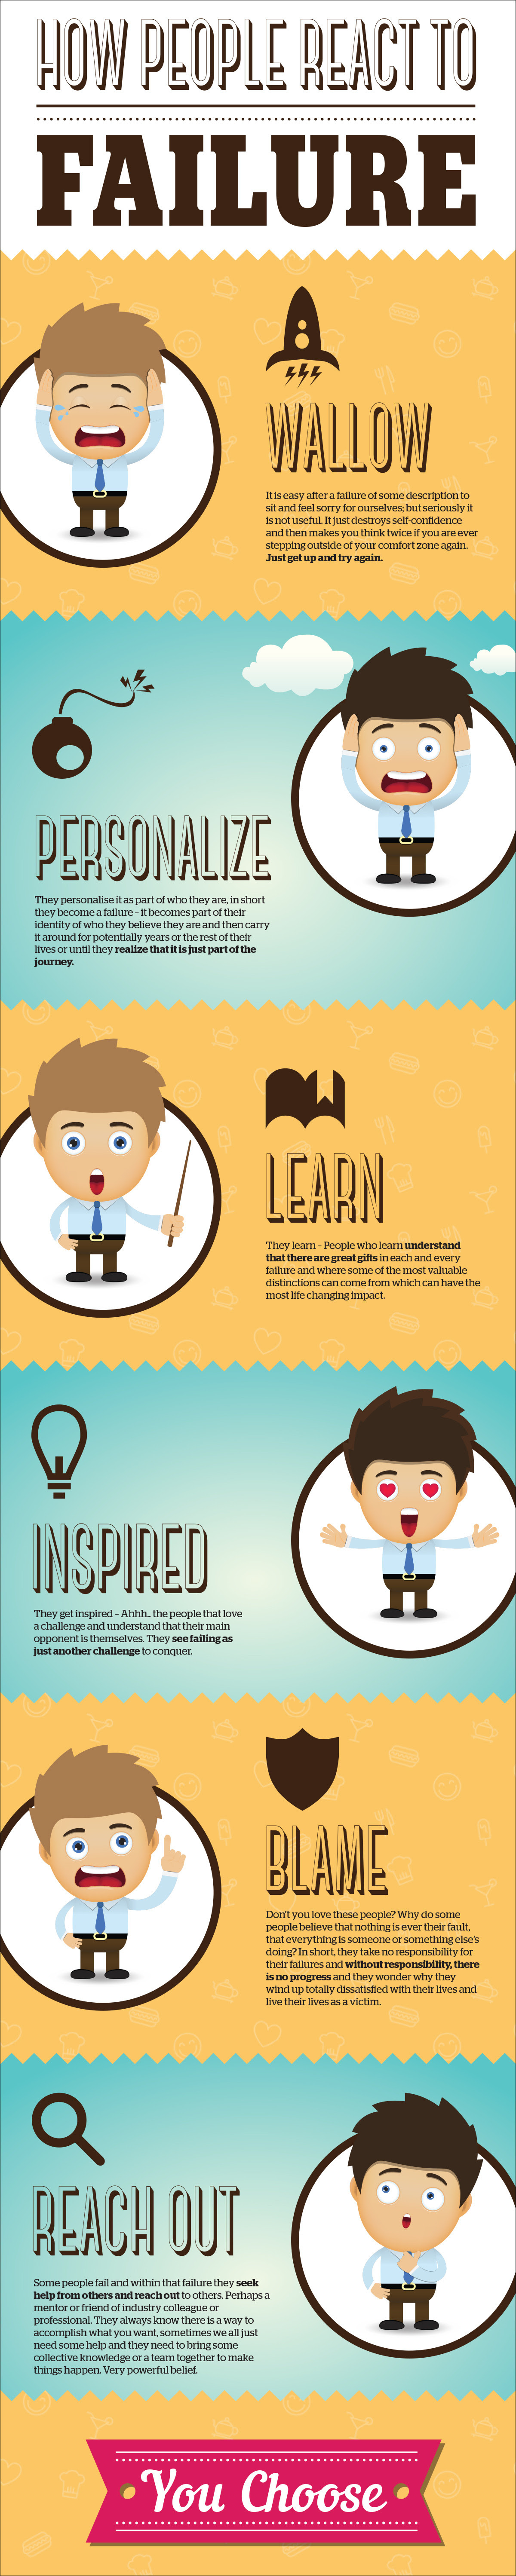 Infographic: How People React To Failure #infographic